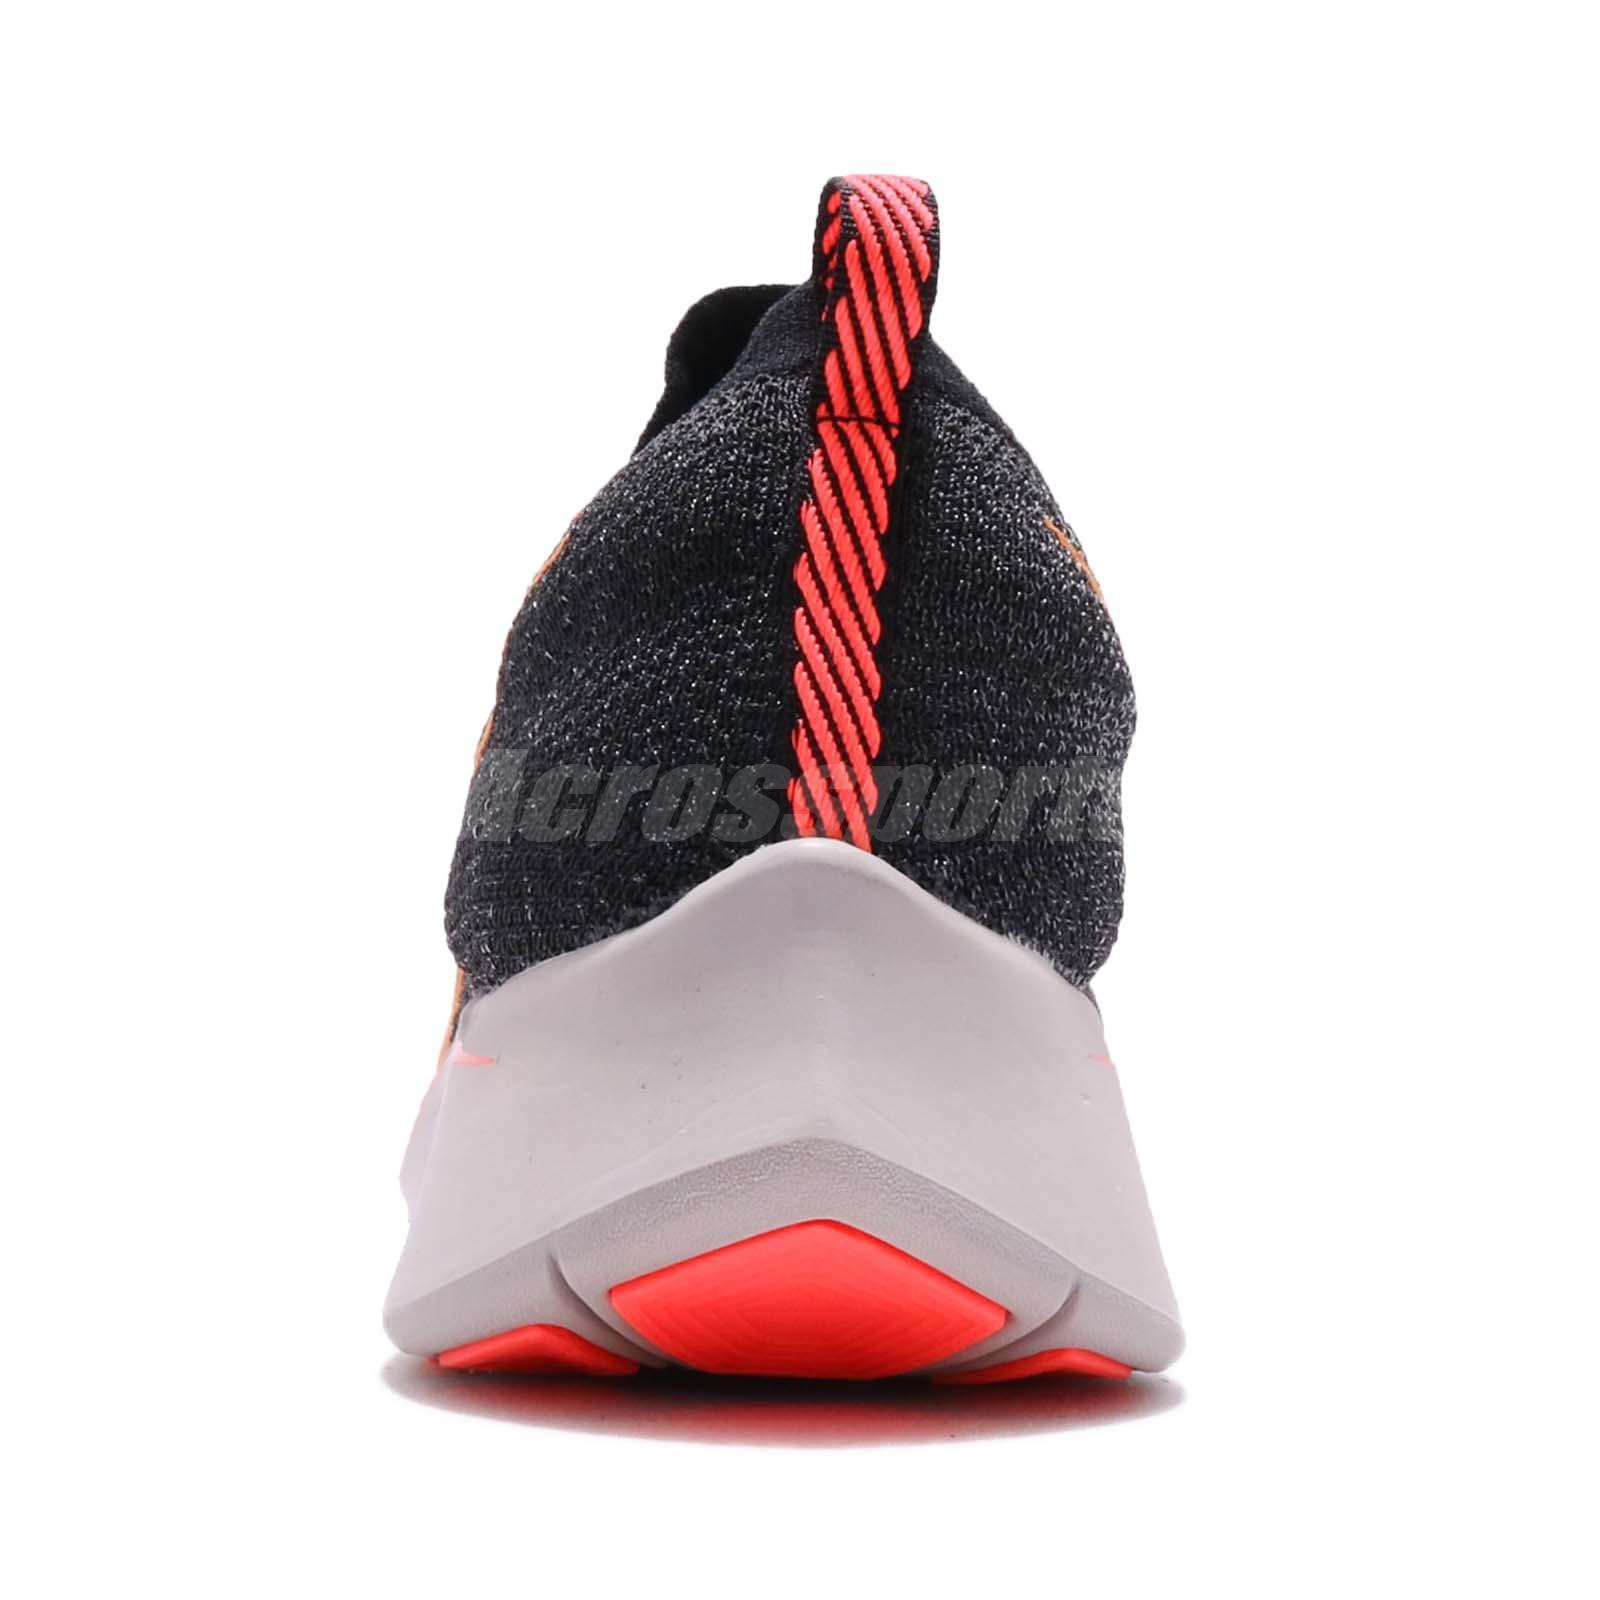 acb40daed4cf Nike Zoom Fly FK Flyknit Black Orange Peel Men Running Shoes ...